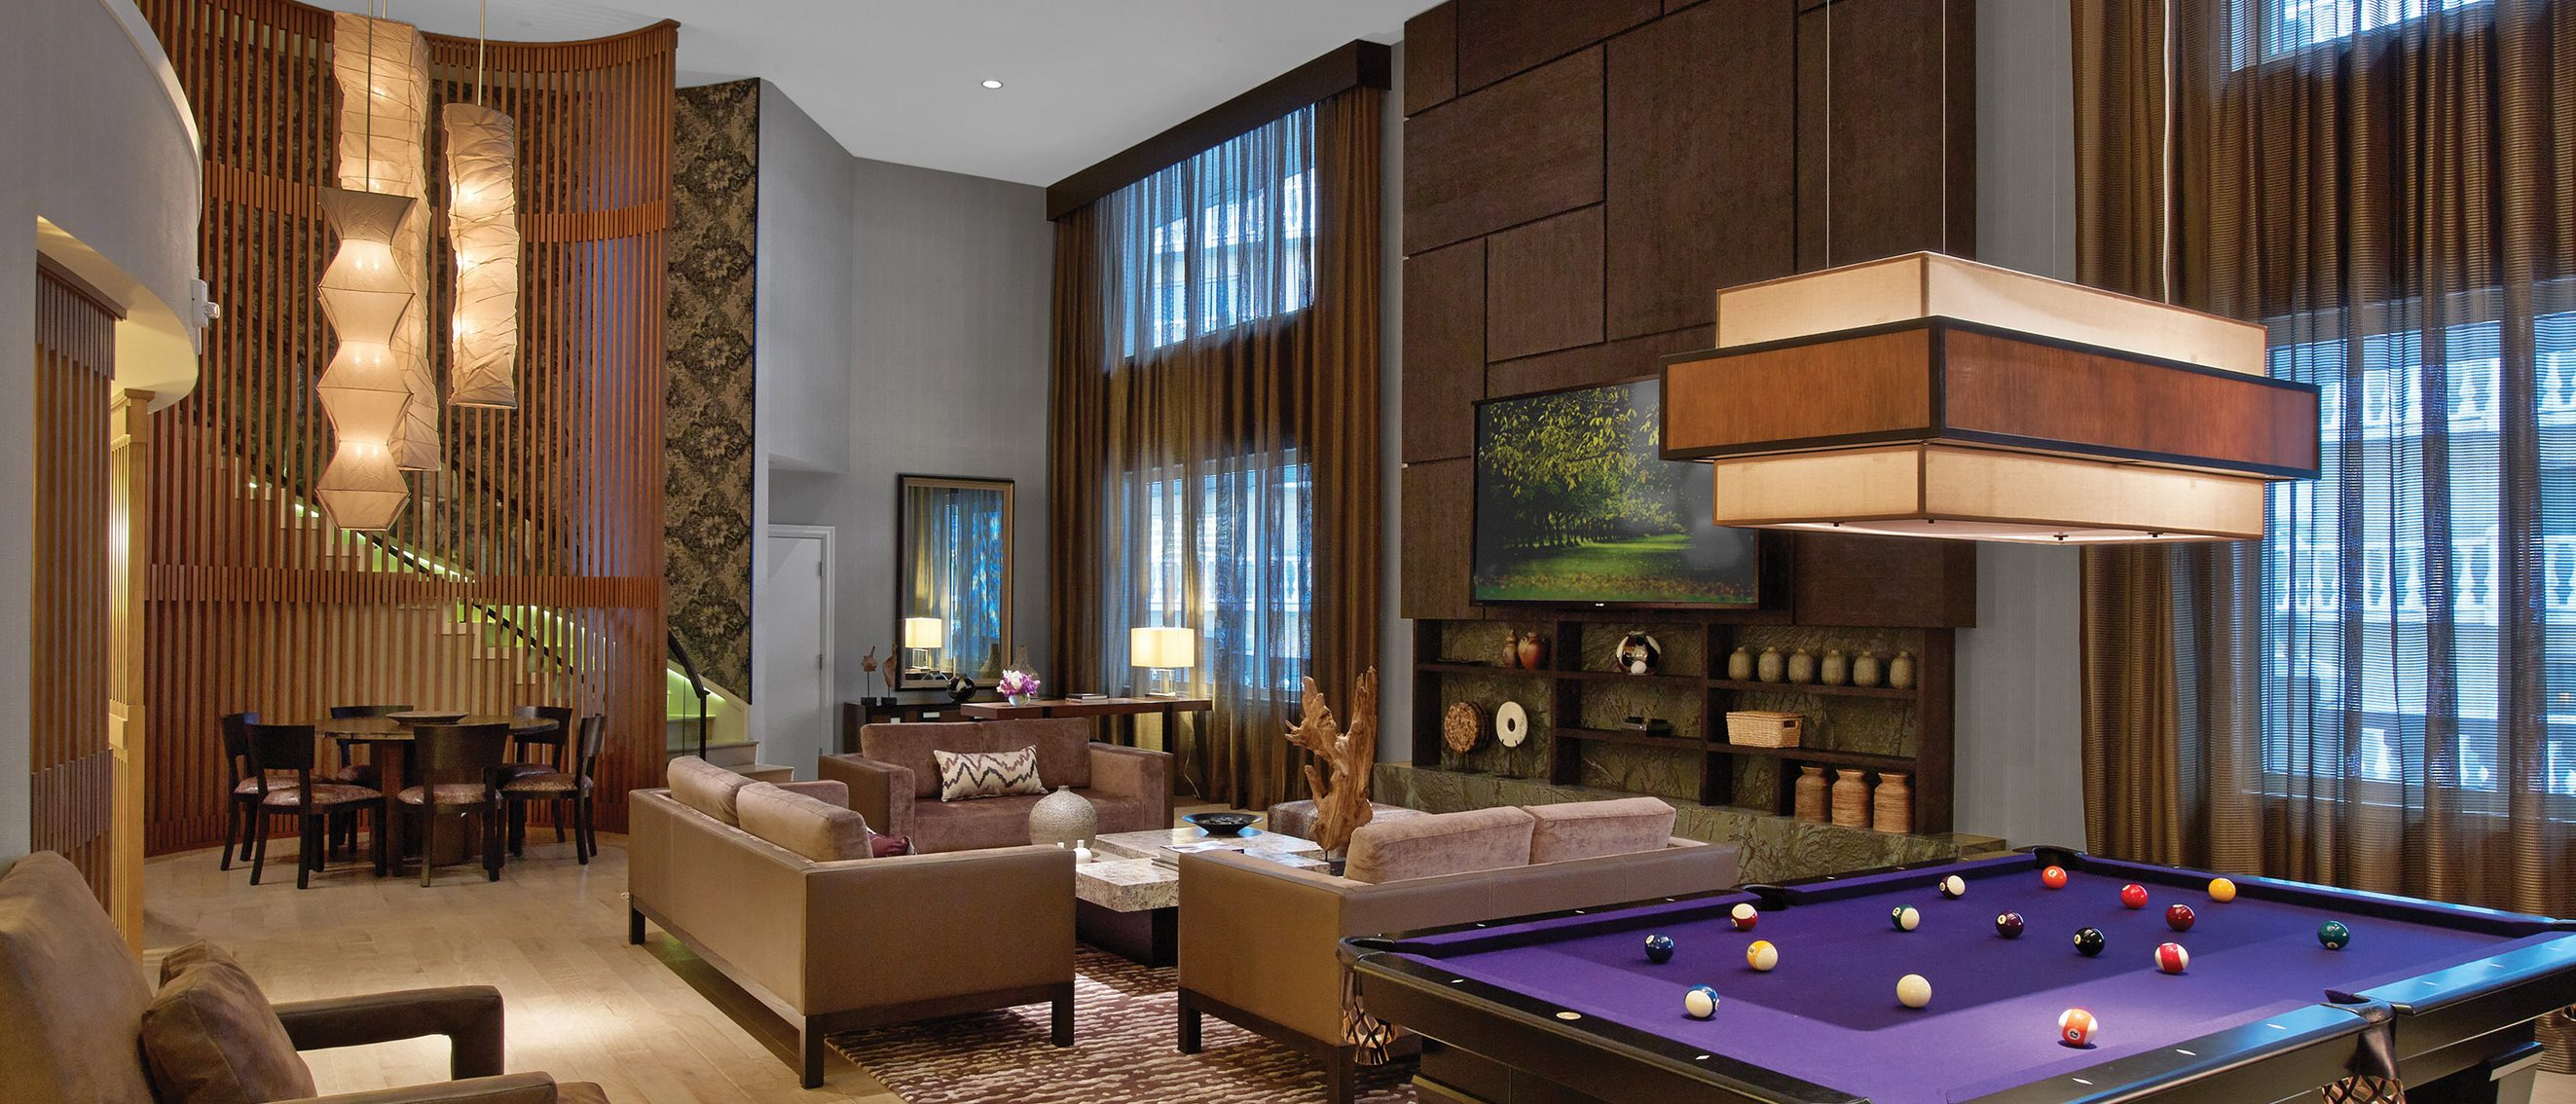 Photo Of Room Showing A Bed, Nightstand, Couch, Chair And Coffee Table Inside The Nobu Hotel At Caesars Palace